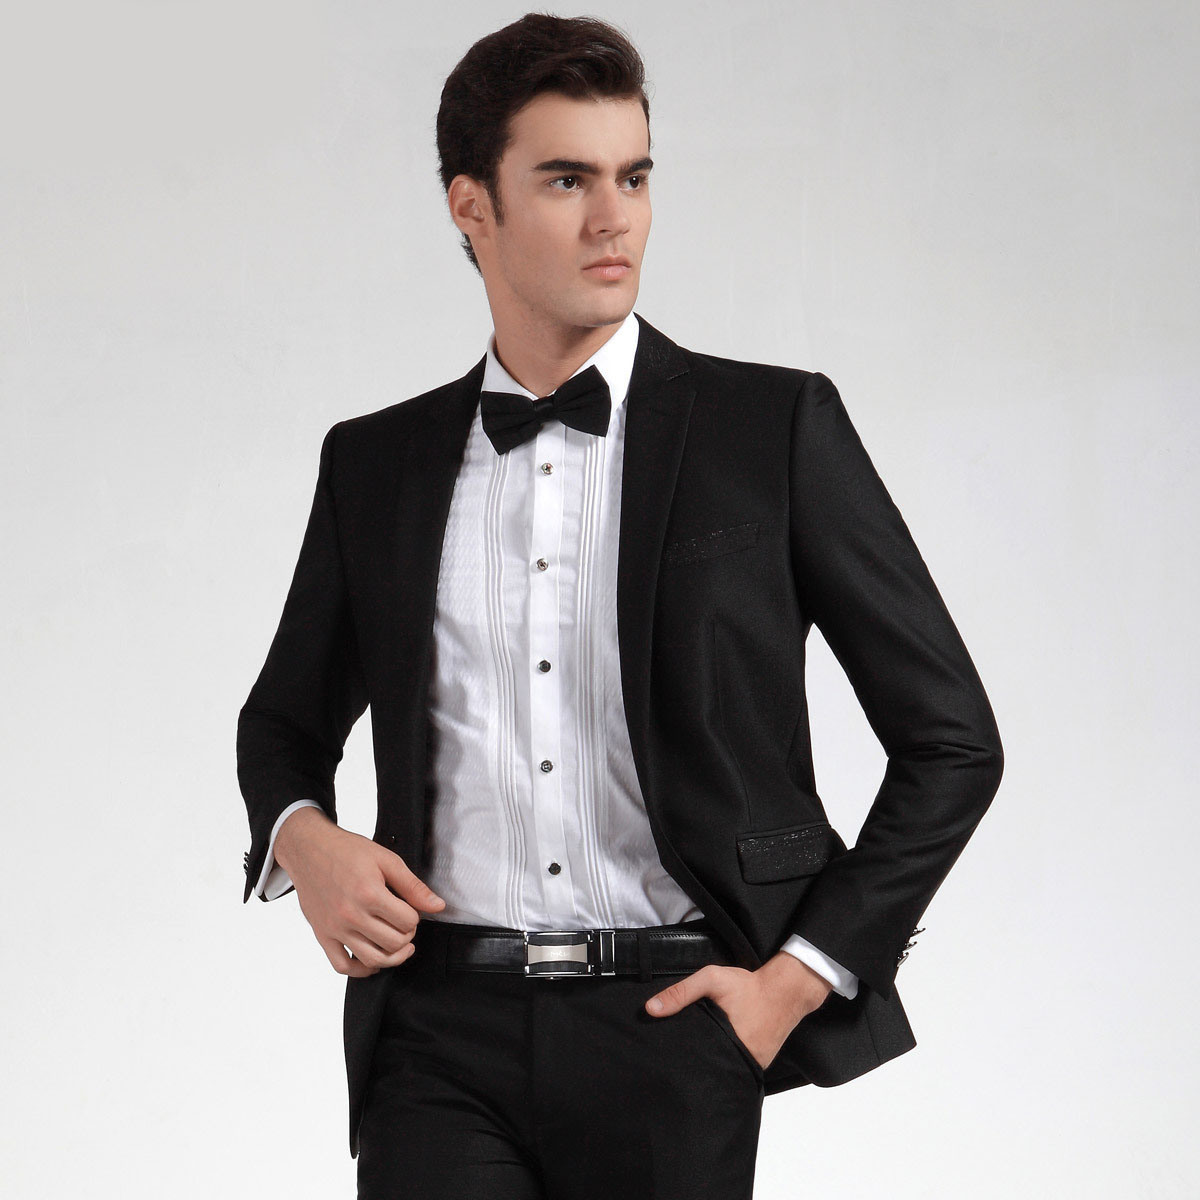 Cool And Cool: Wedding Dress For Men